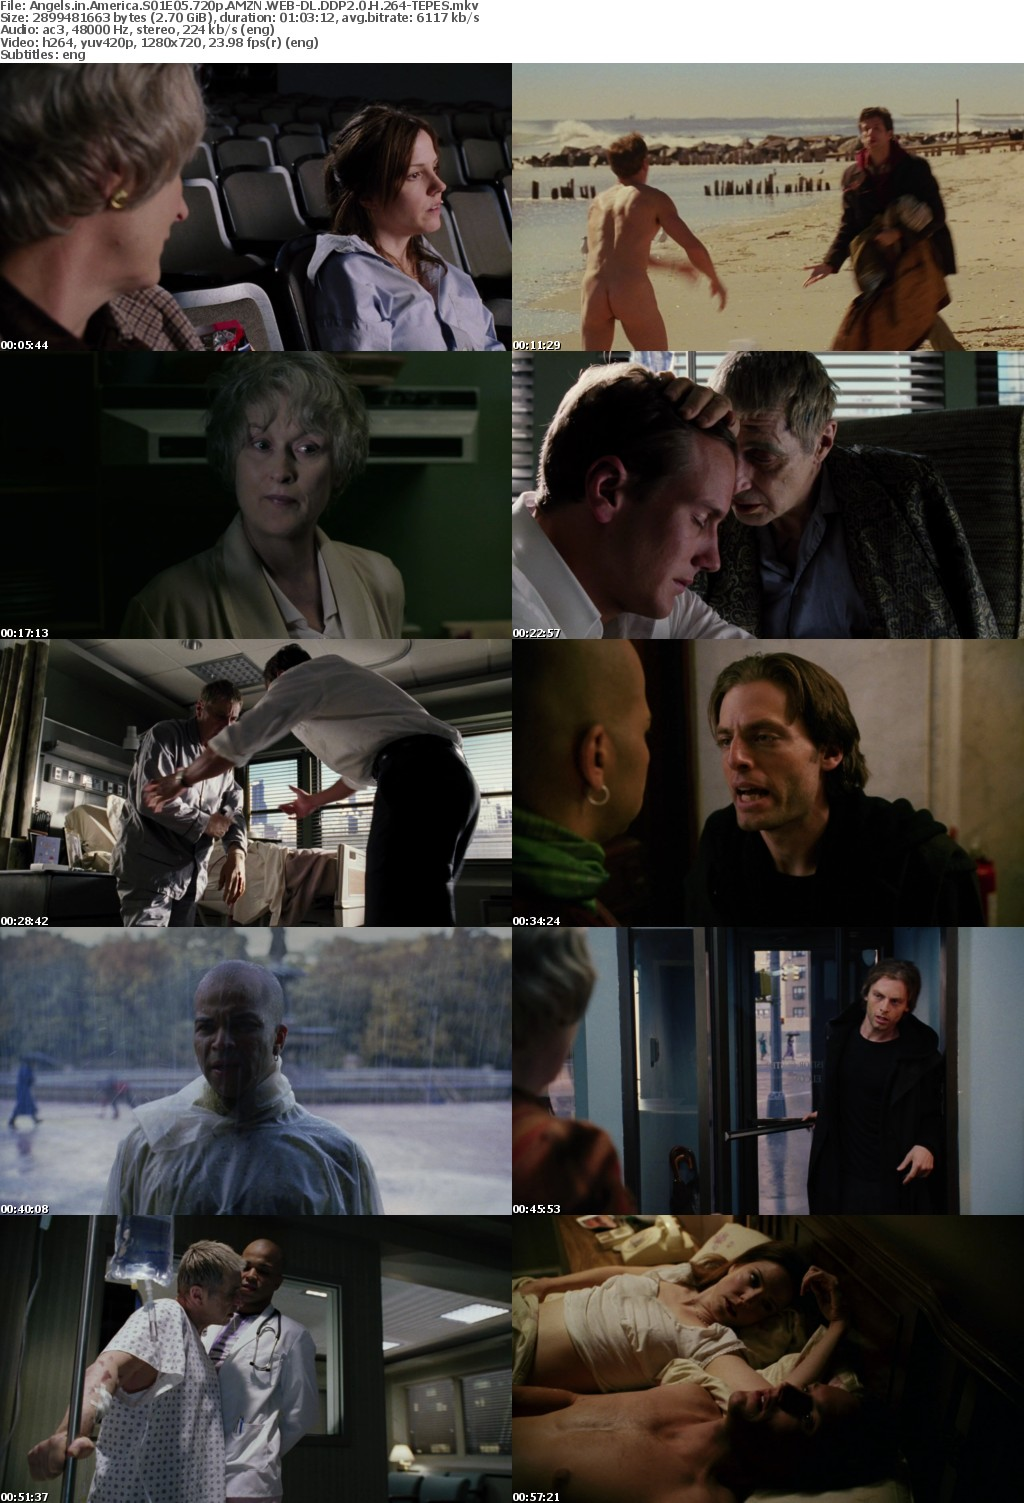 Angels in America S01 720p AMZN WEB-DL DDP2 0 H 264-TEPES